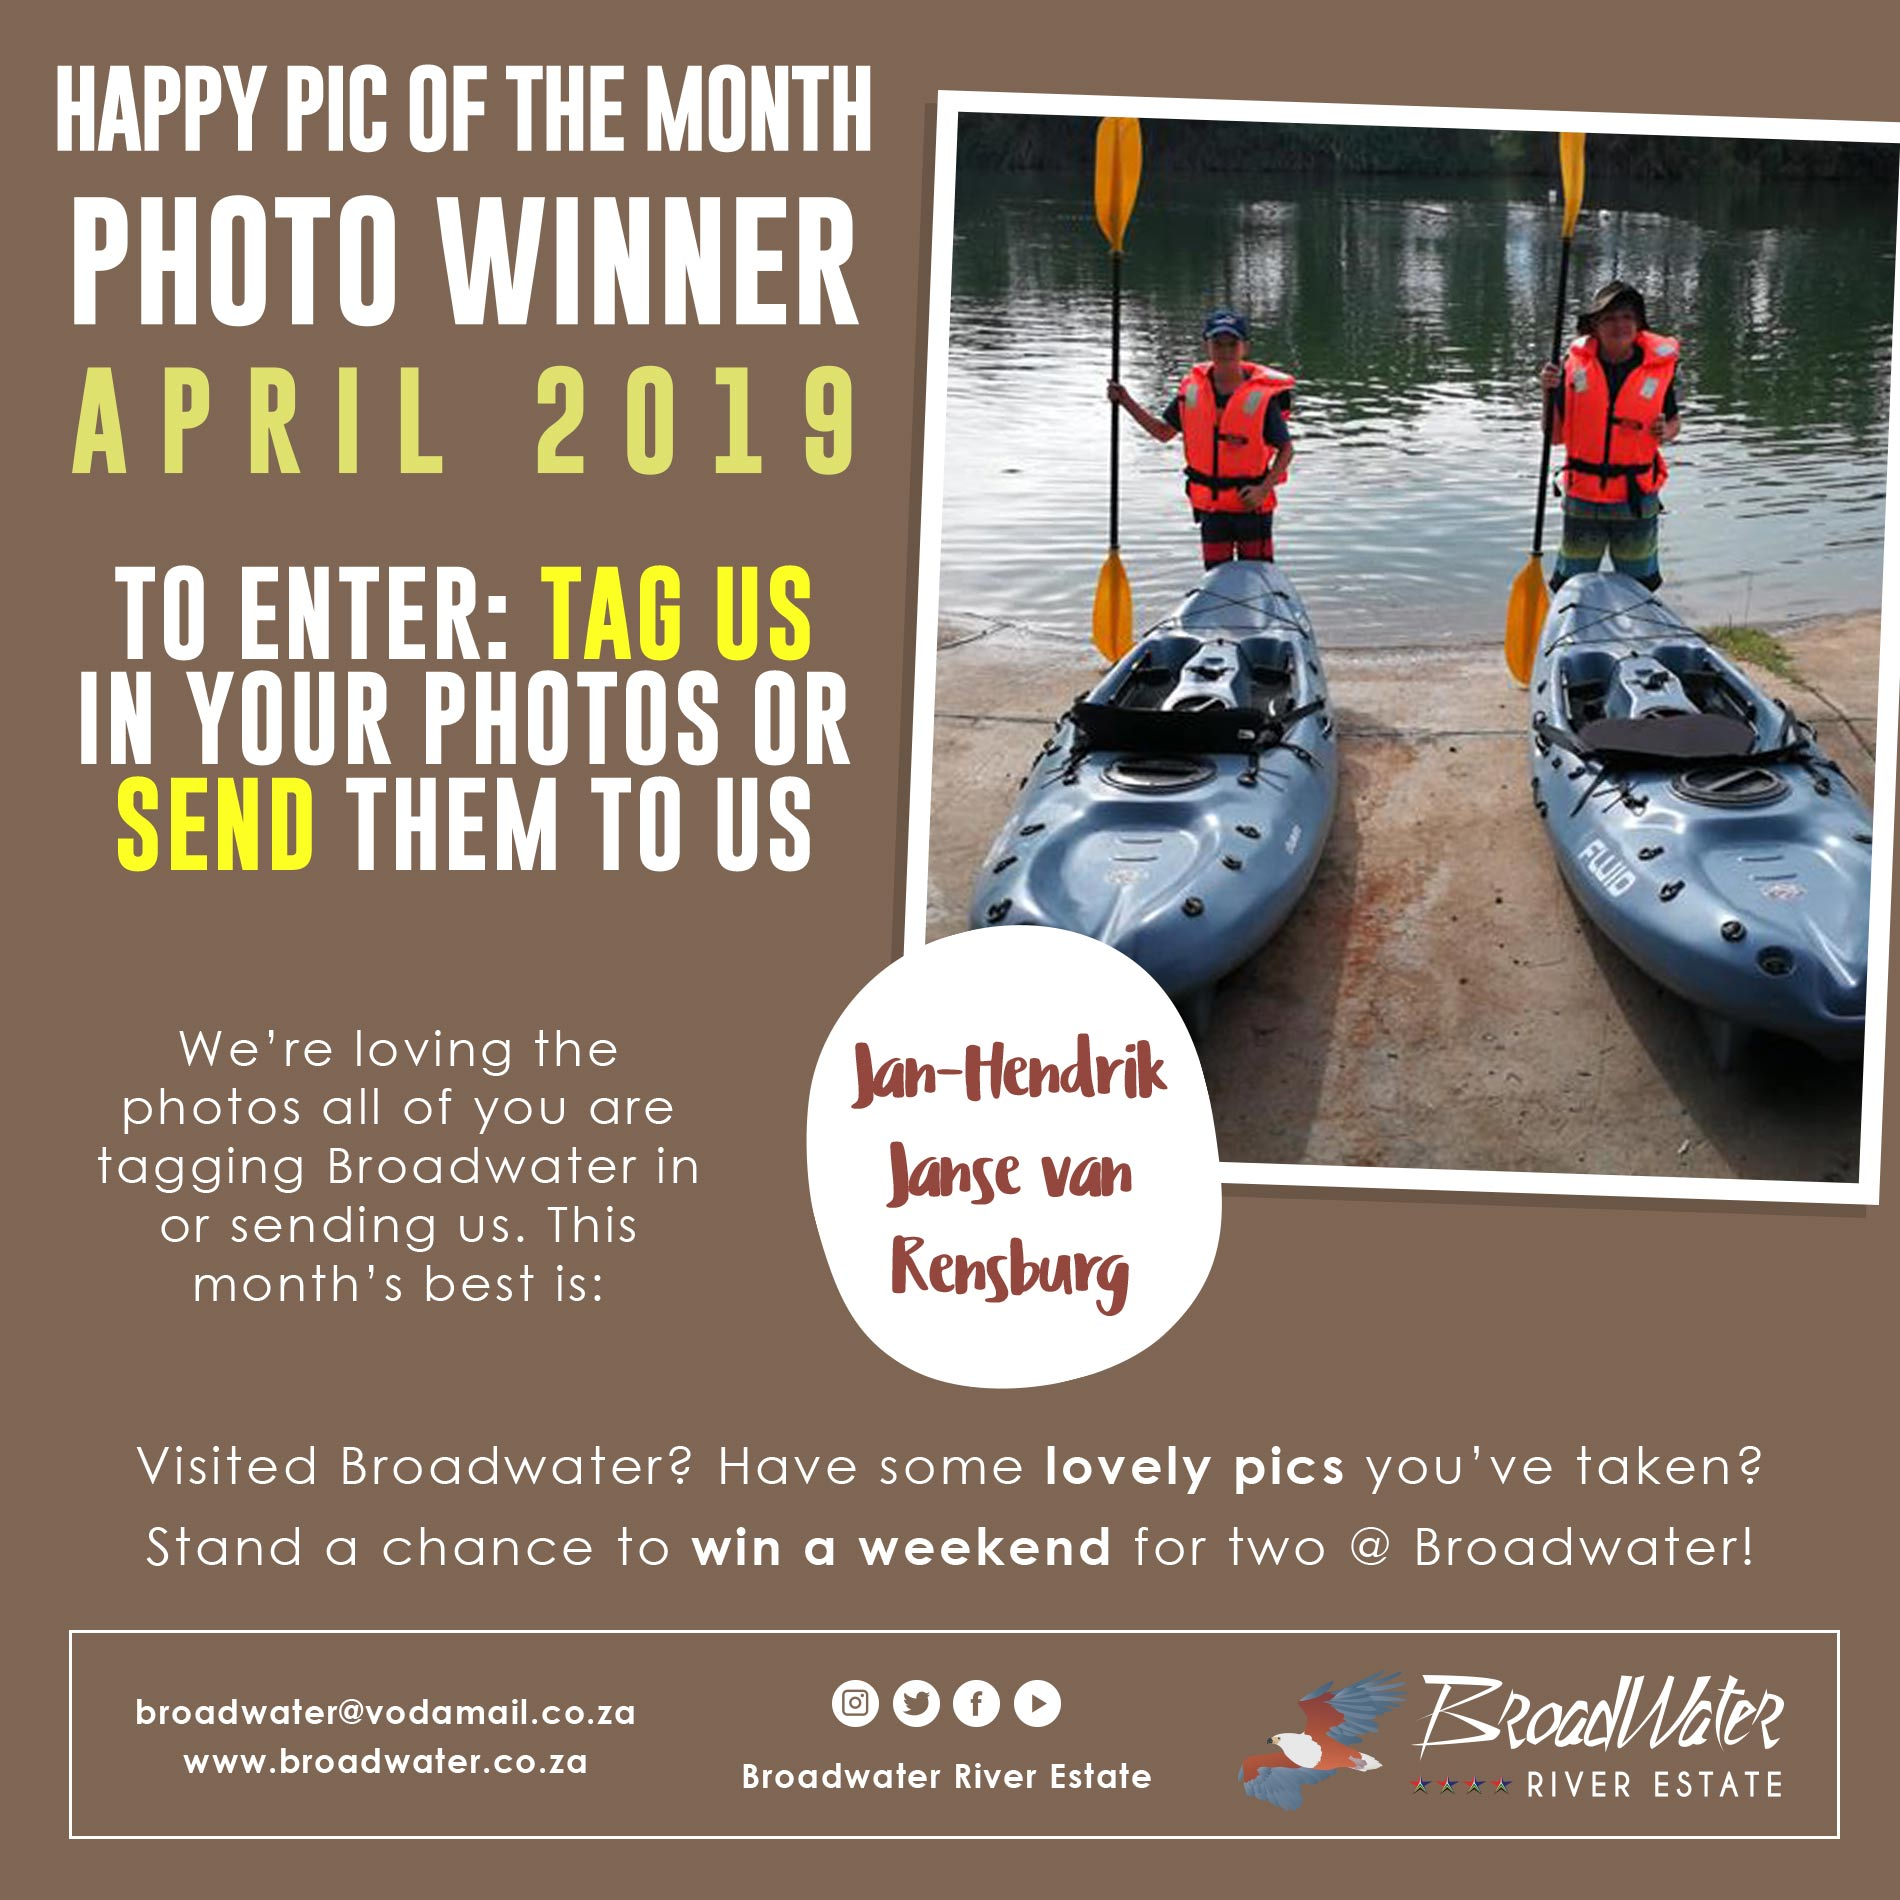 photo contest winner for april 2019